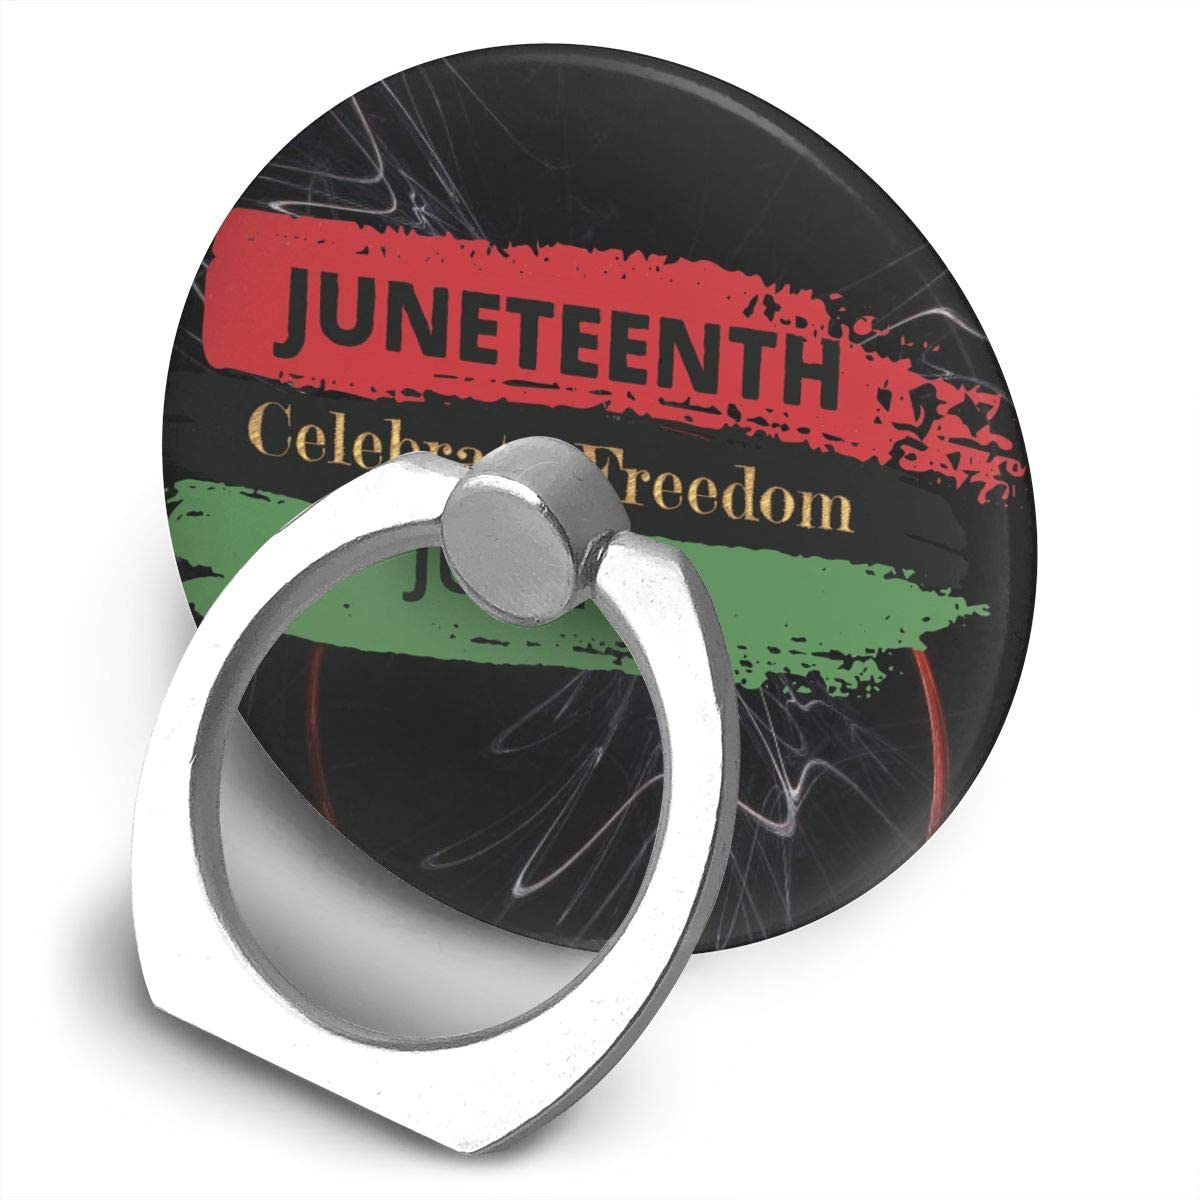 Sabibiegenwo Juneteenth Celebrate Freedom June 19 360 Degree Rotating Ring Stand Cell Phone Mount